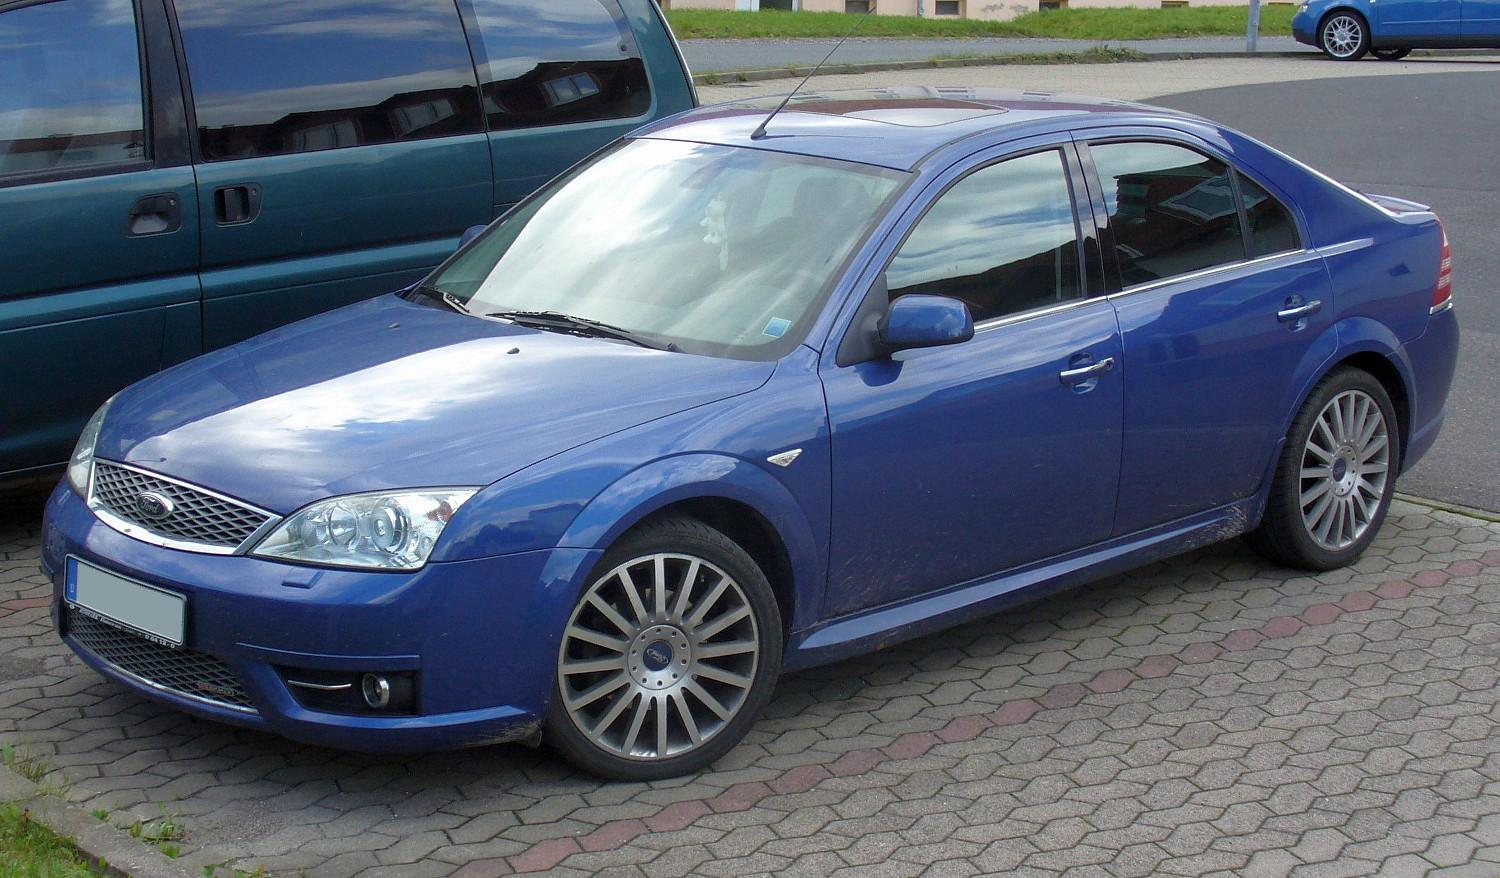 Ford Mondeo 2007 foto - 2